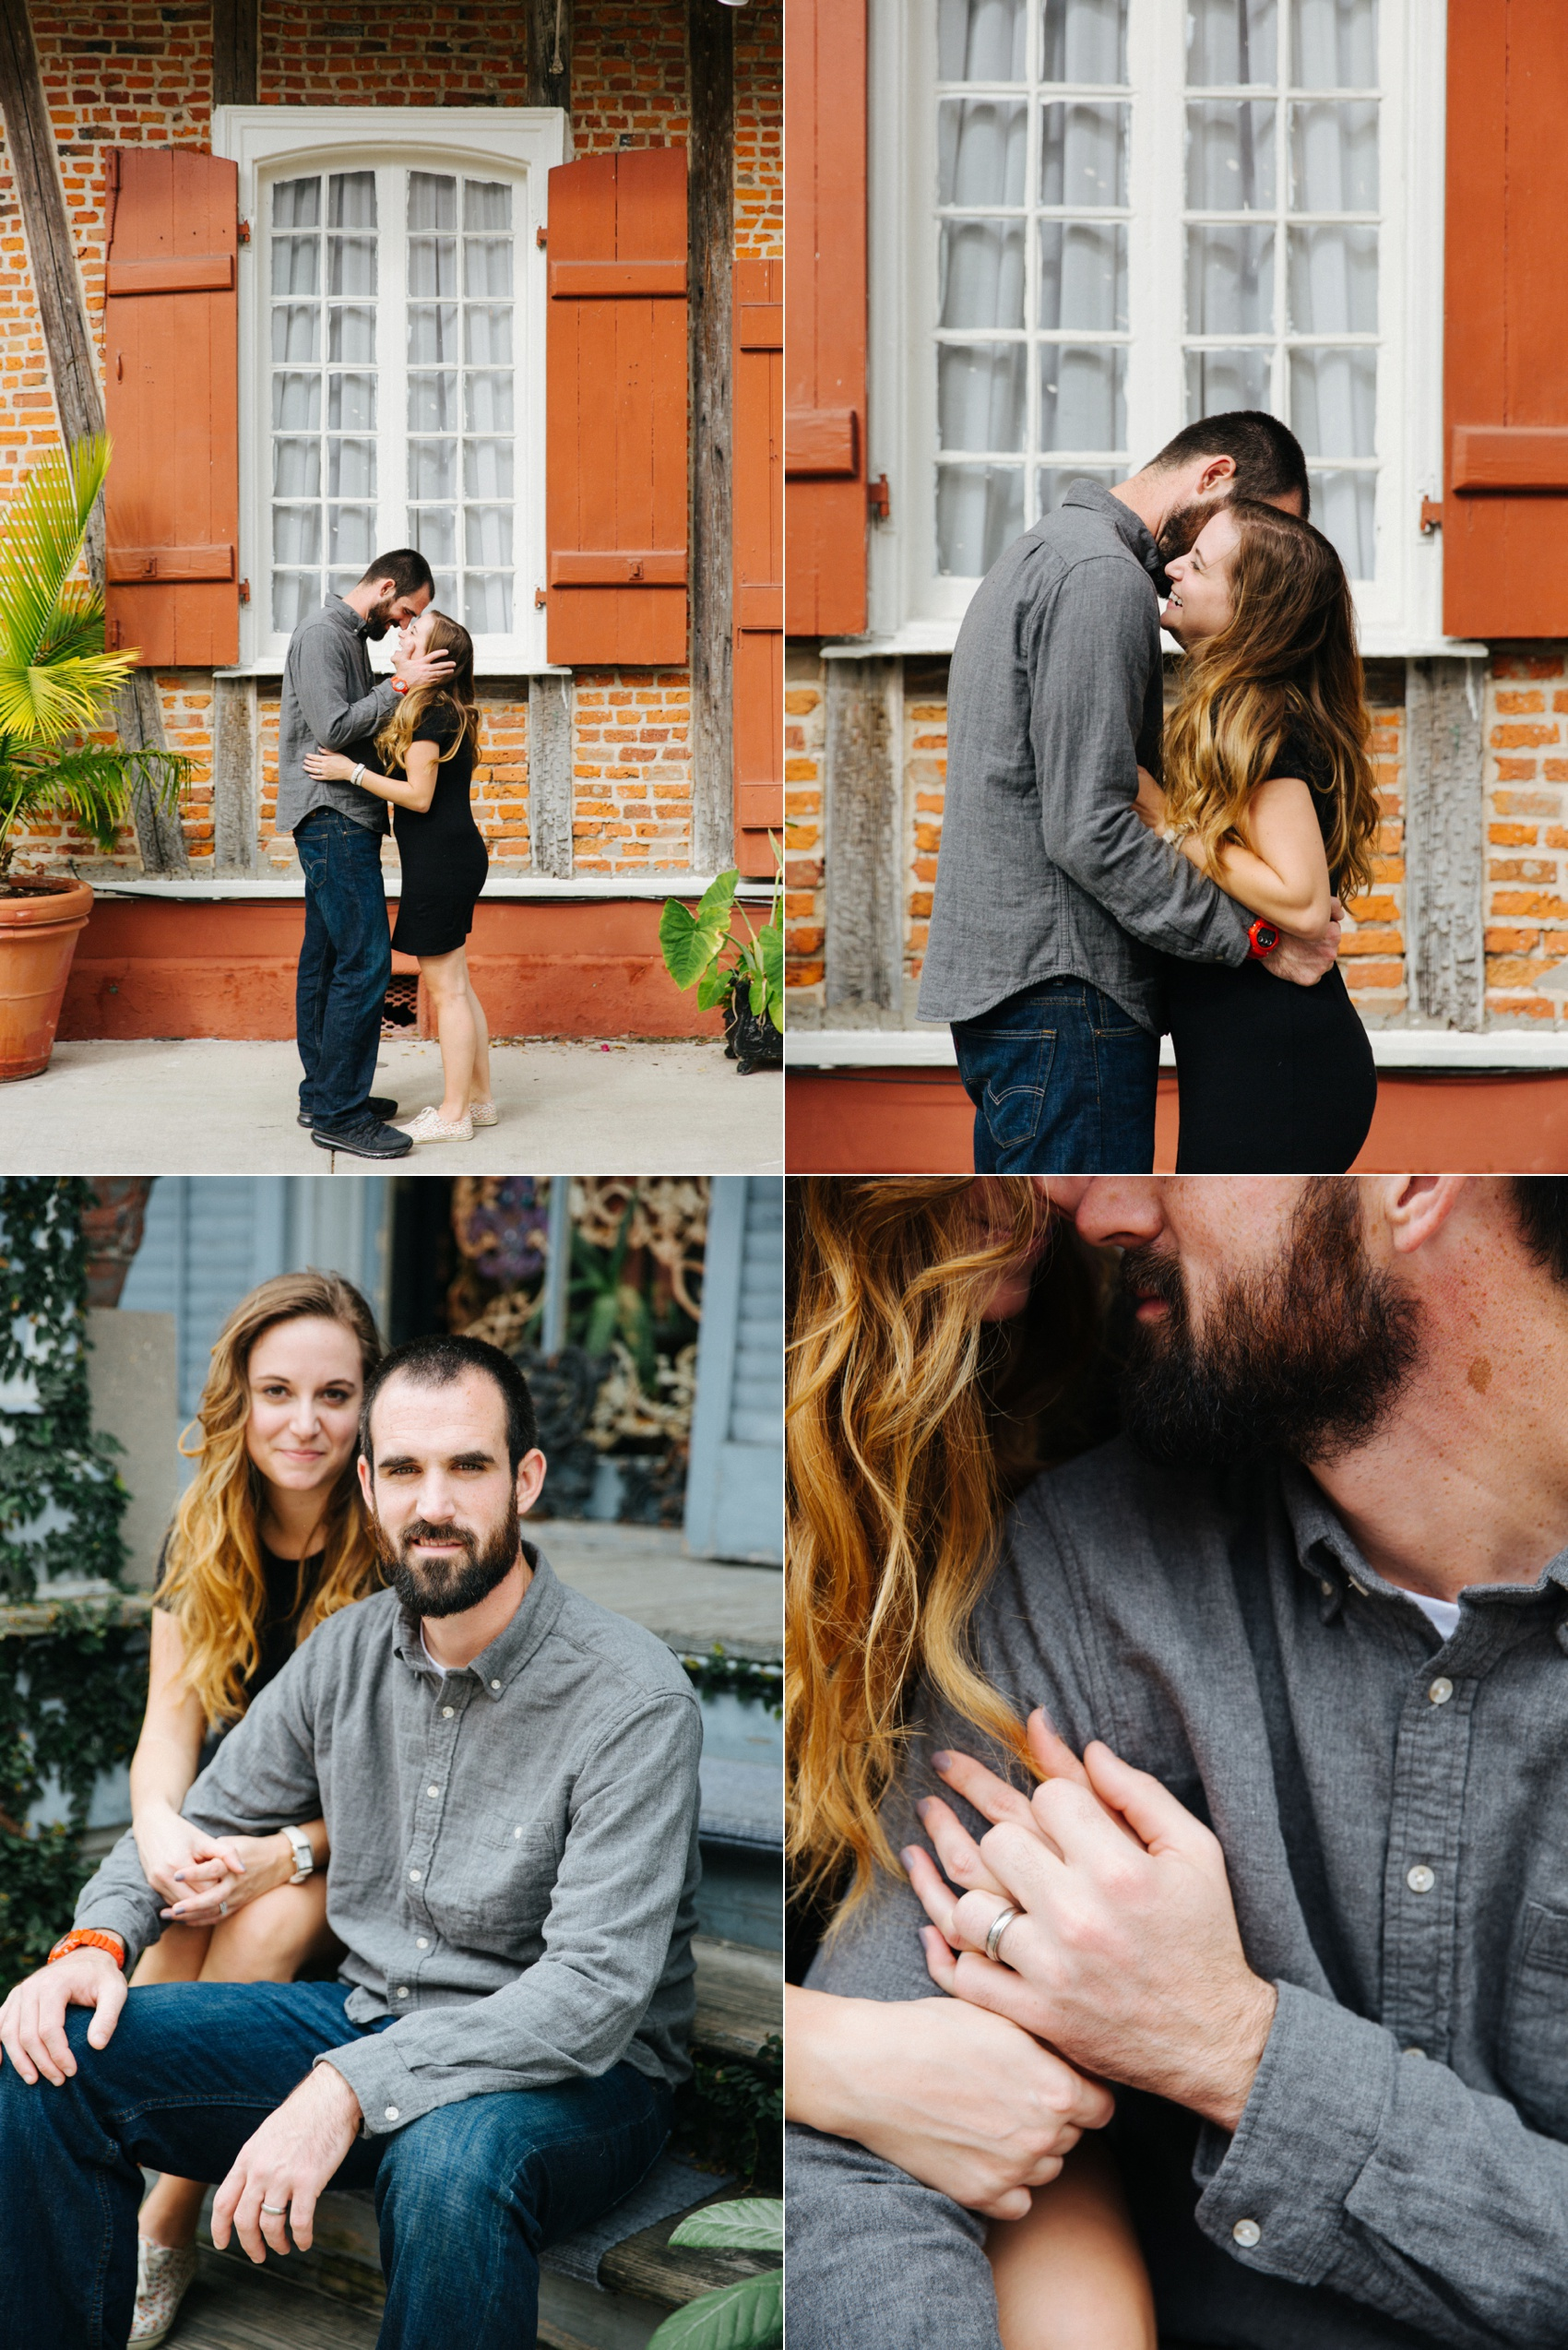 french quarter new orleans engagement session jake and katie photography-012.jpg